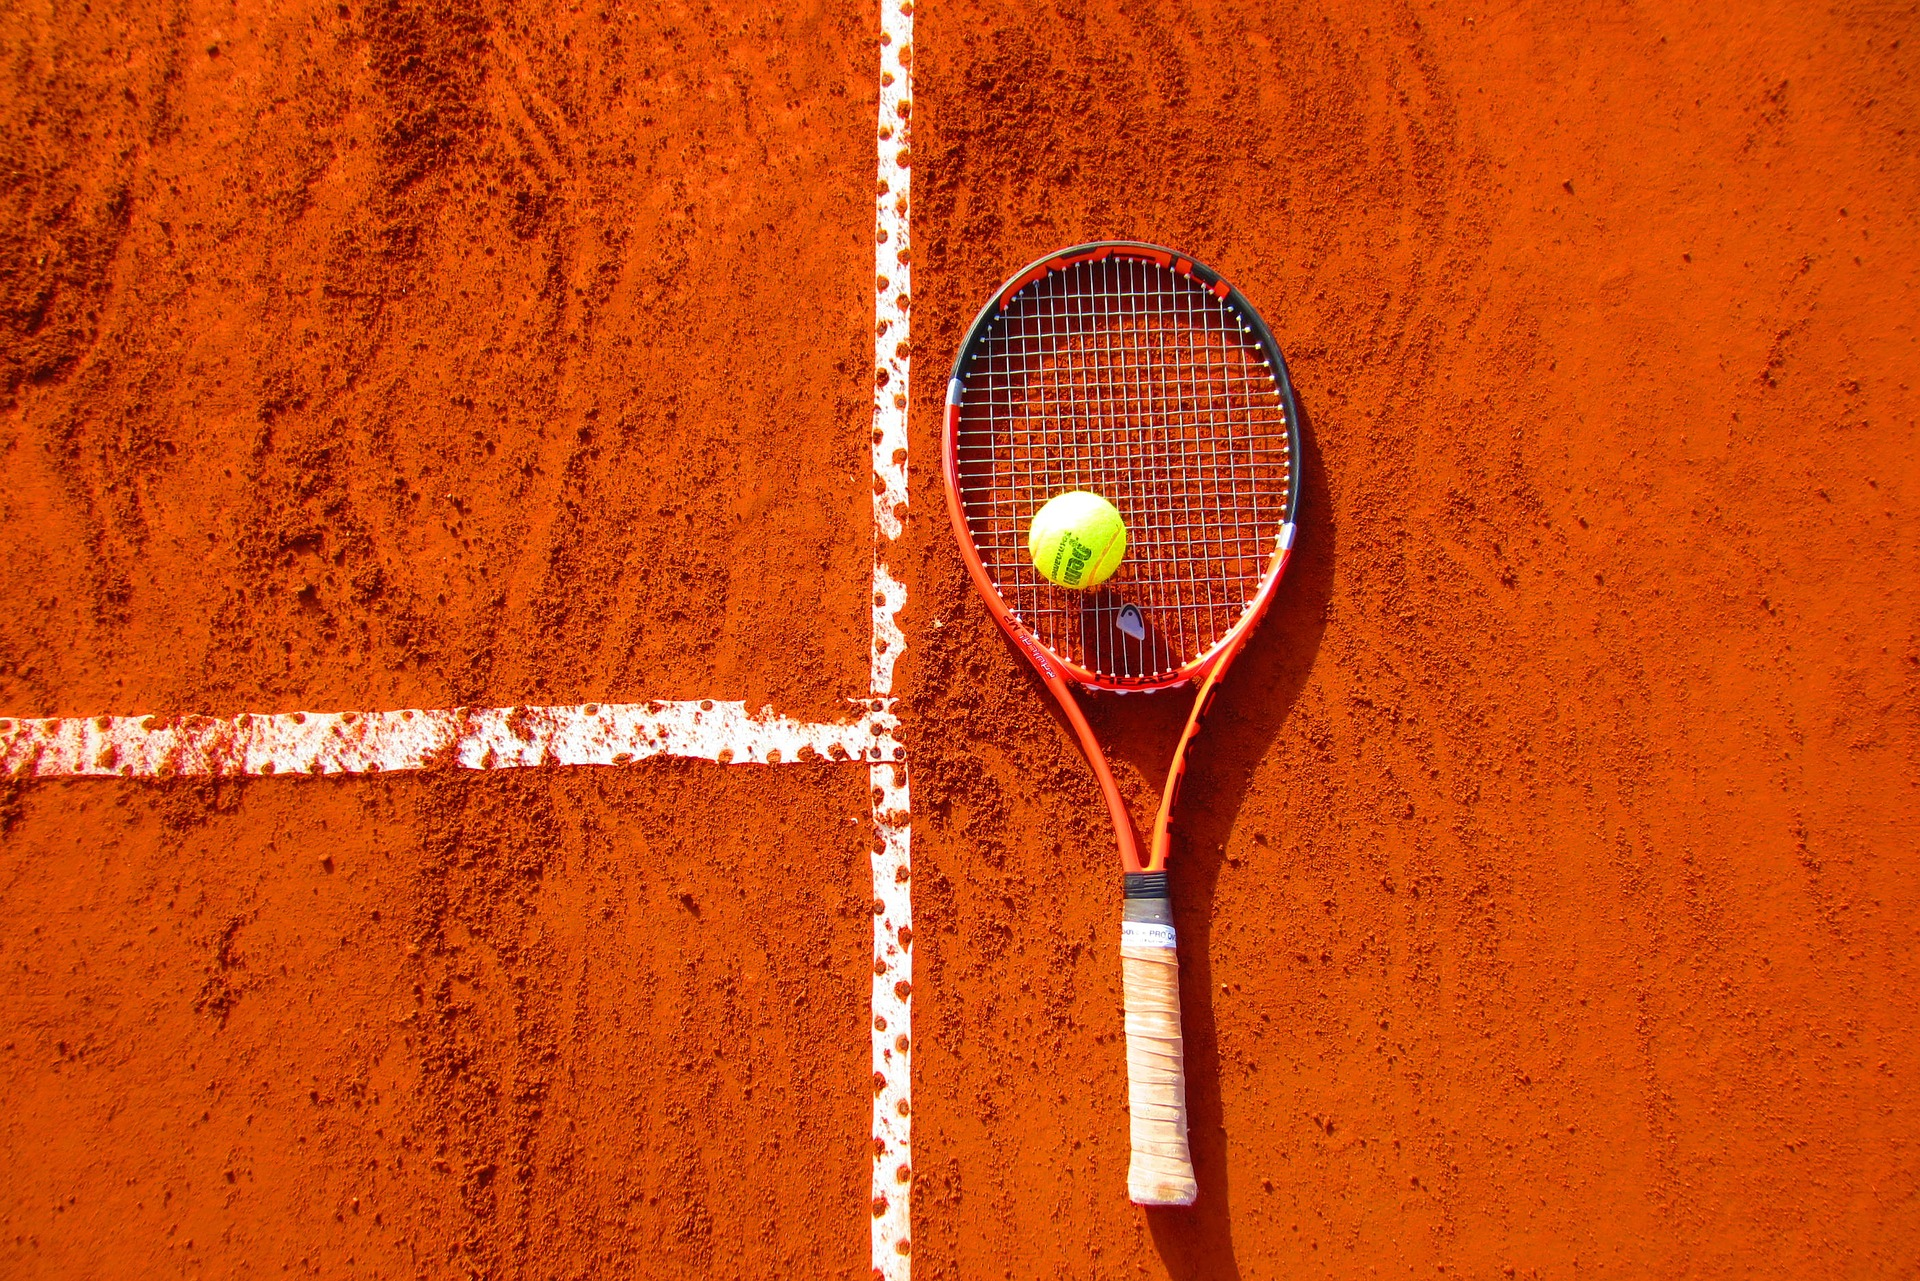 tennis break racket on clay